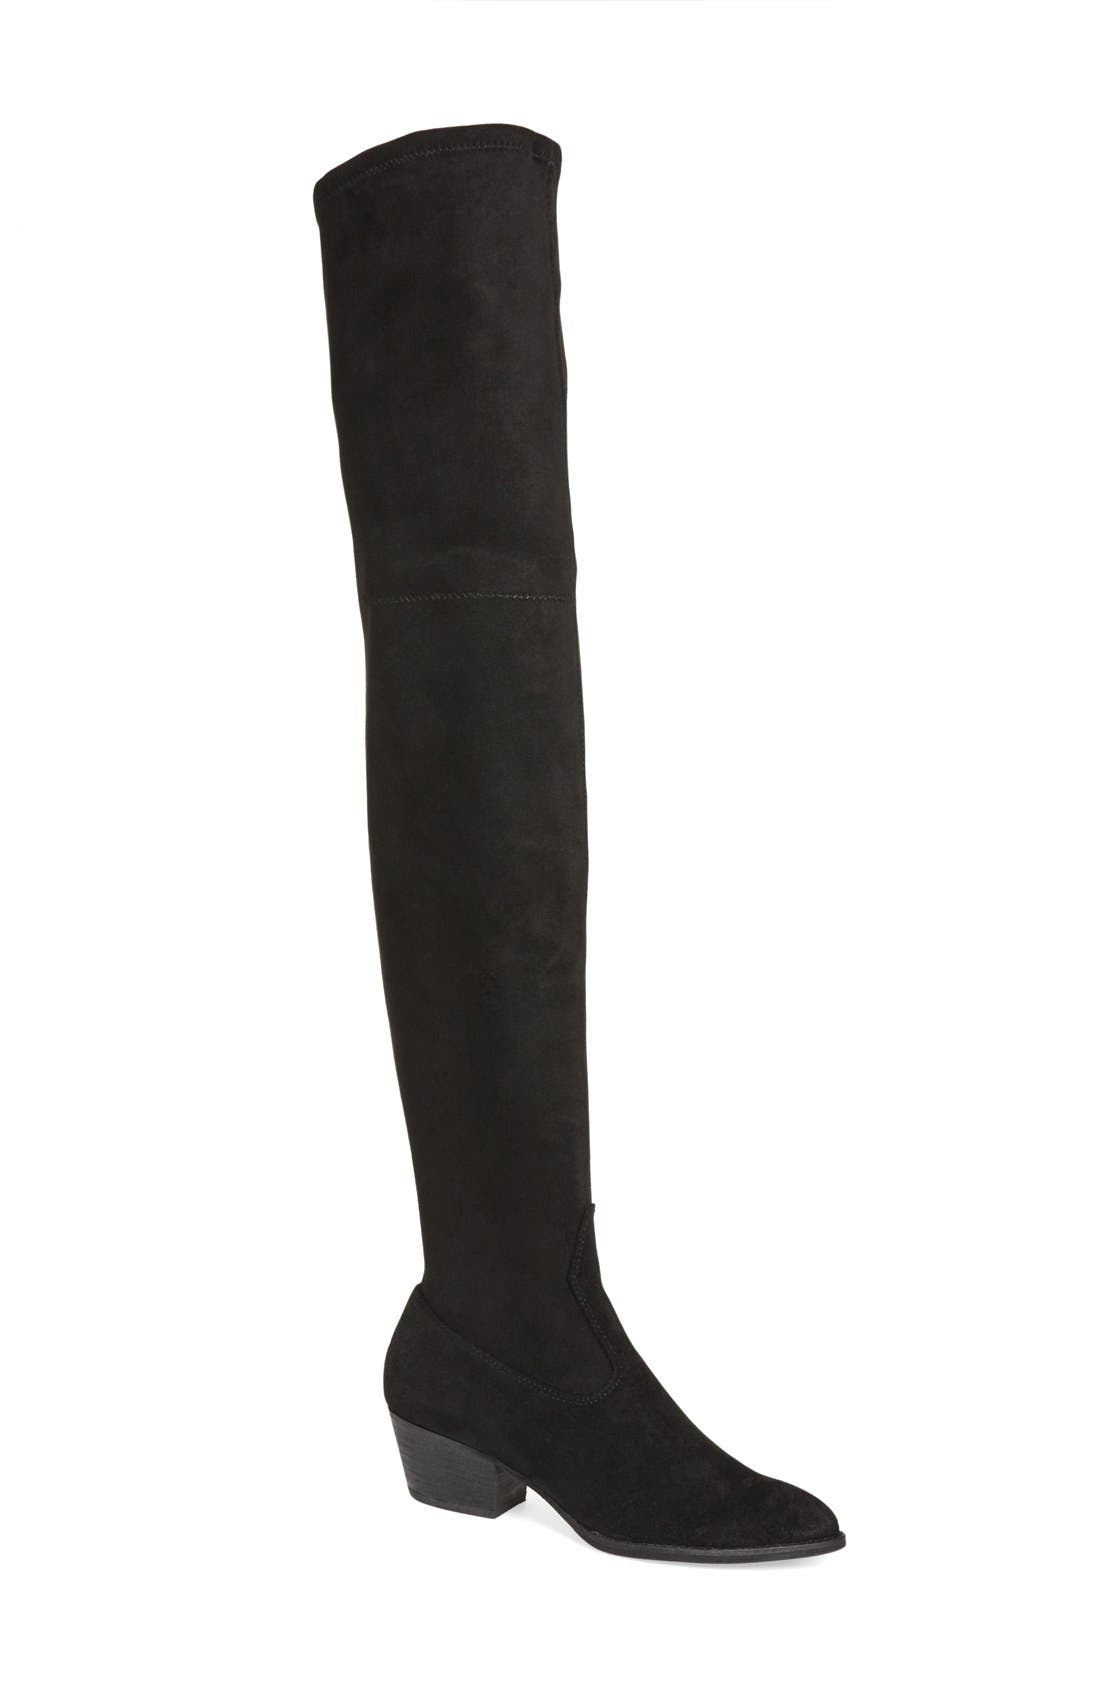 Main Image - Dolce Vita 'Sparrow' Thigh High Almond Toe Boot (Women)